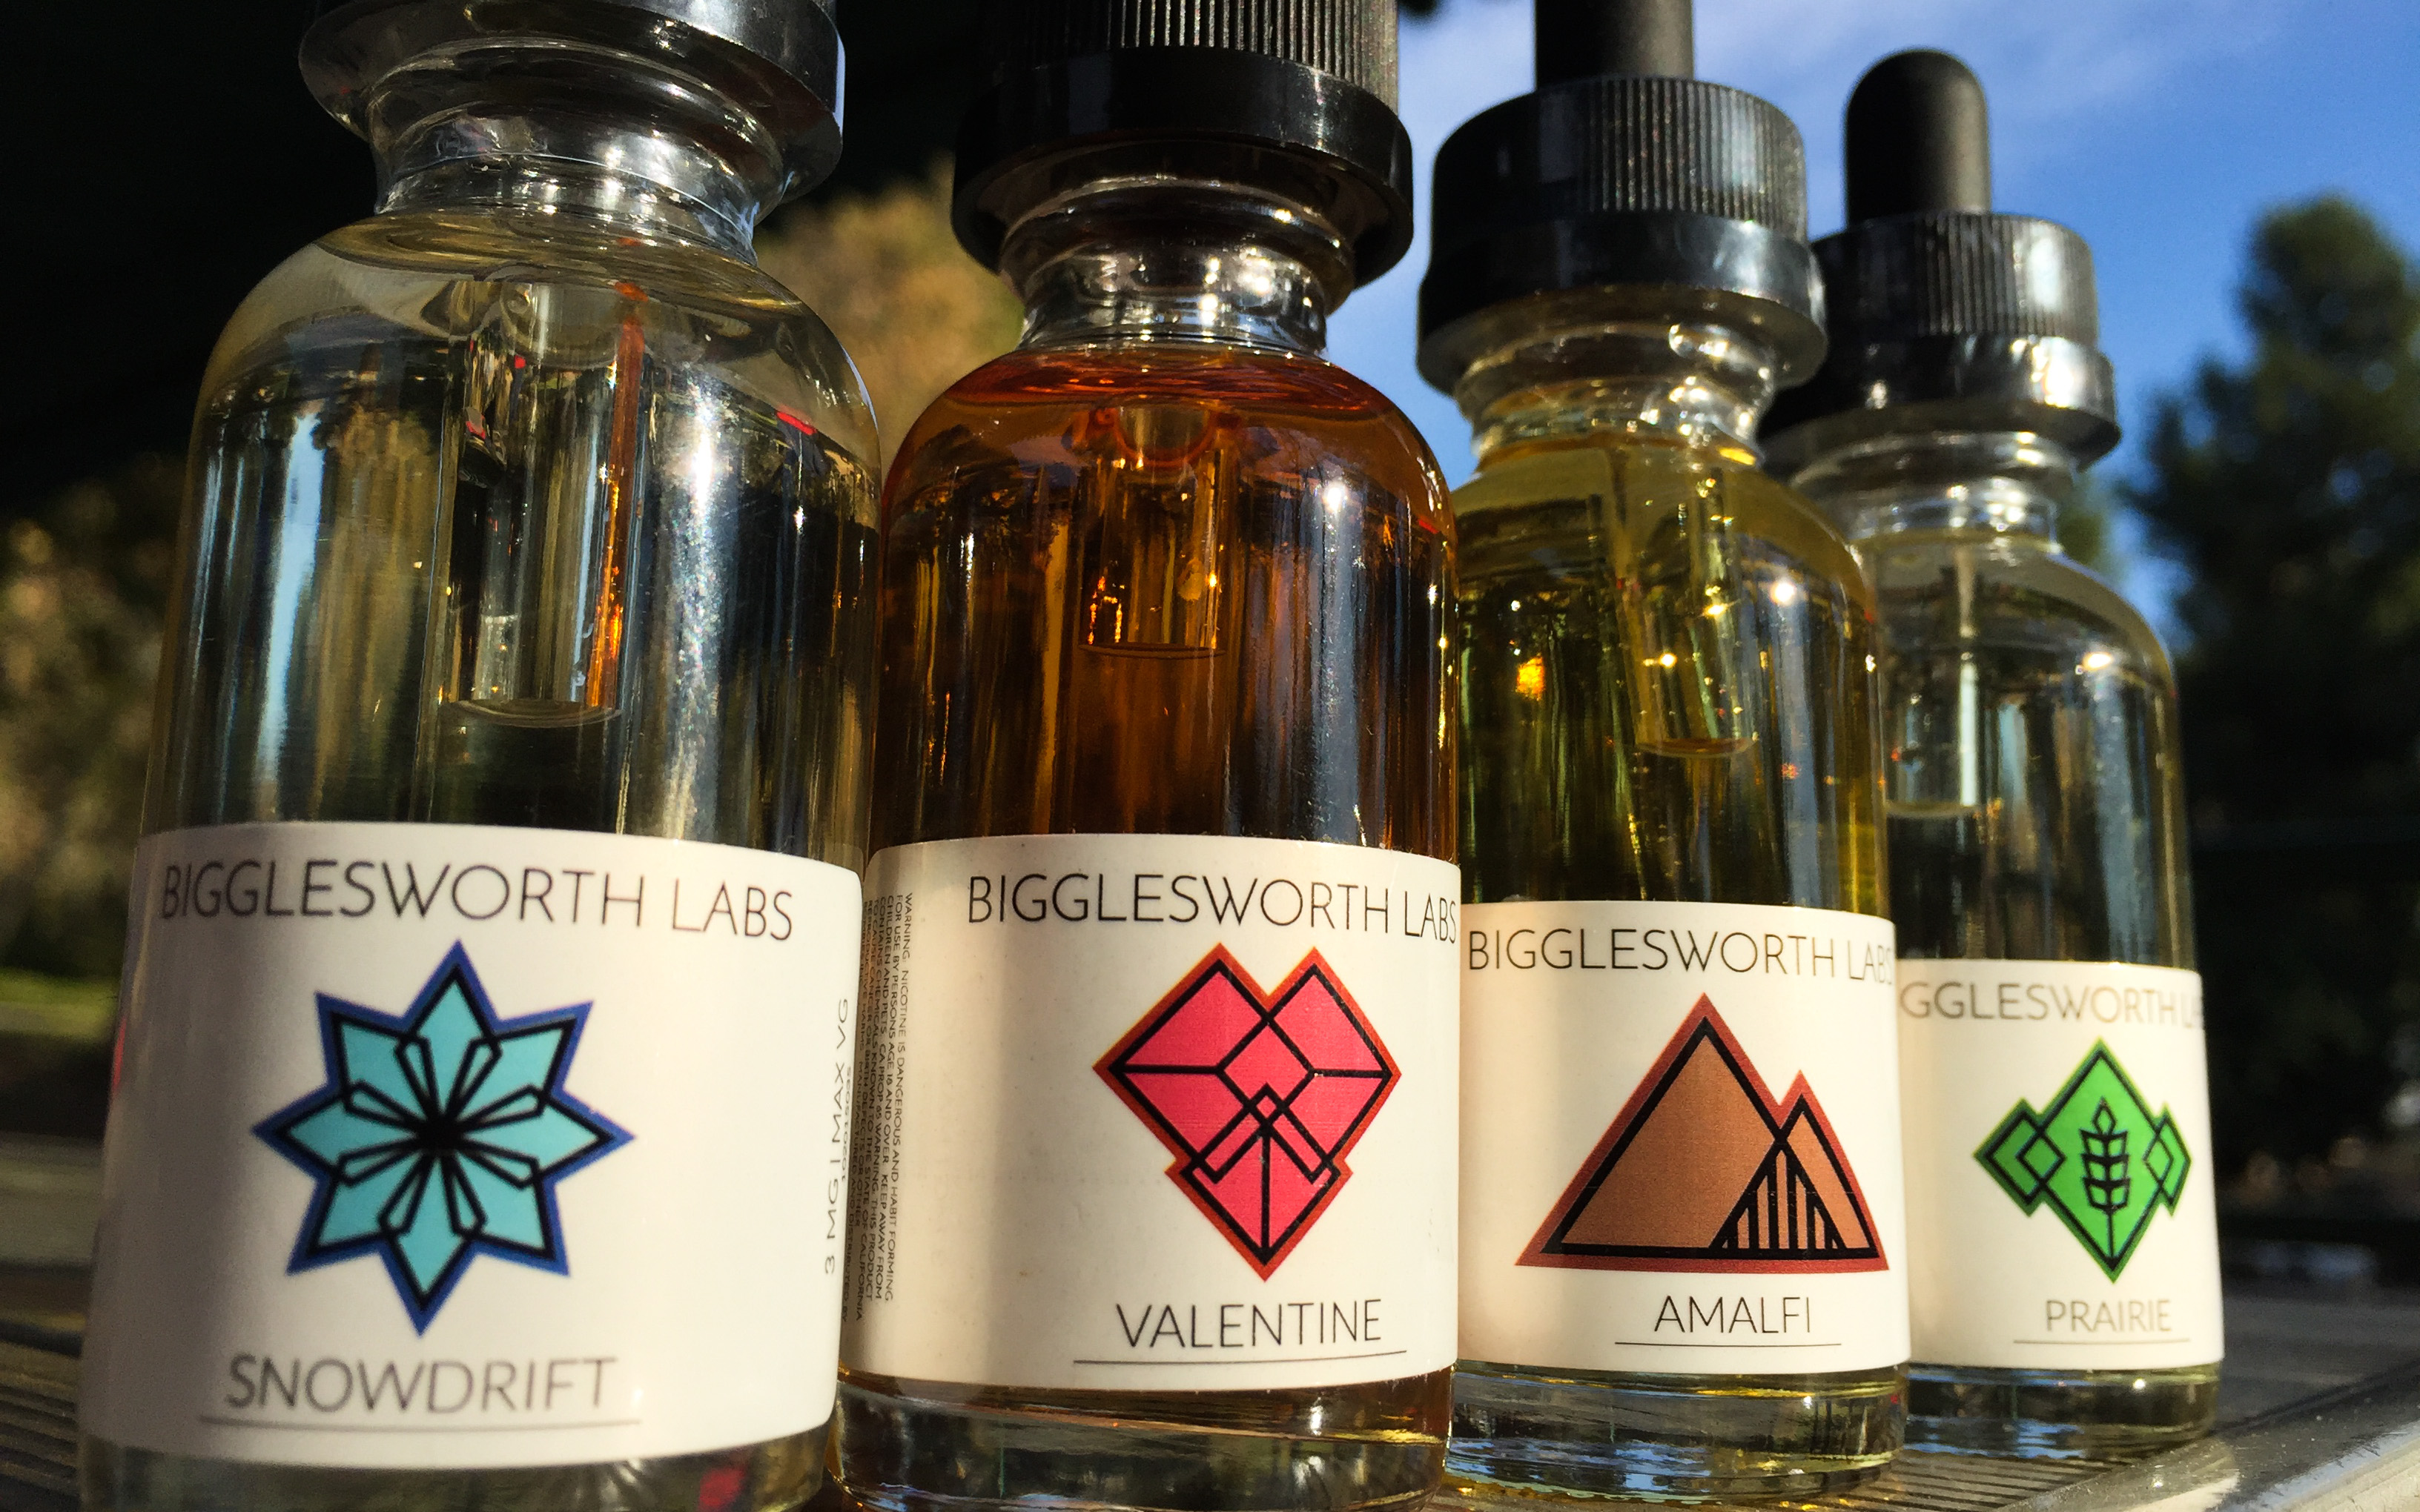 bigglesworth-labs-eliquid-ejuice-vape-category-banner.jpg